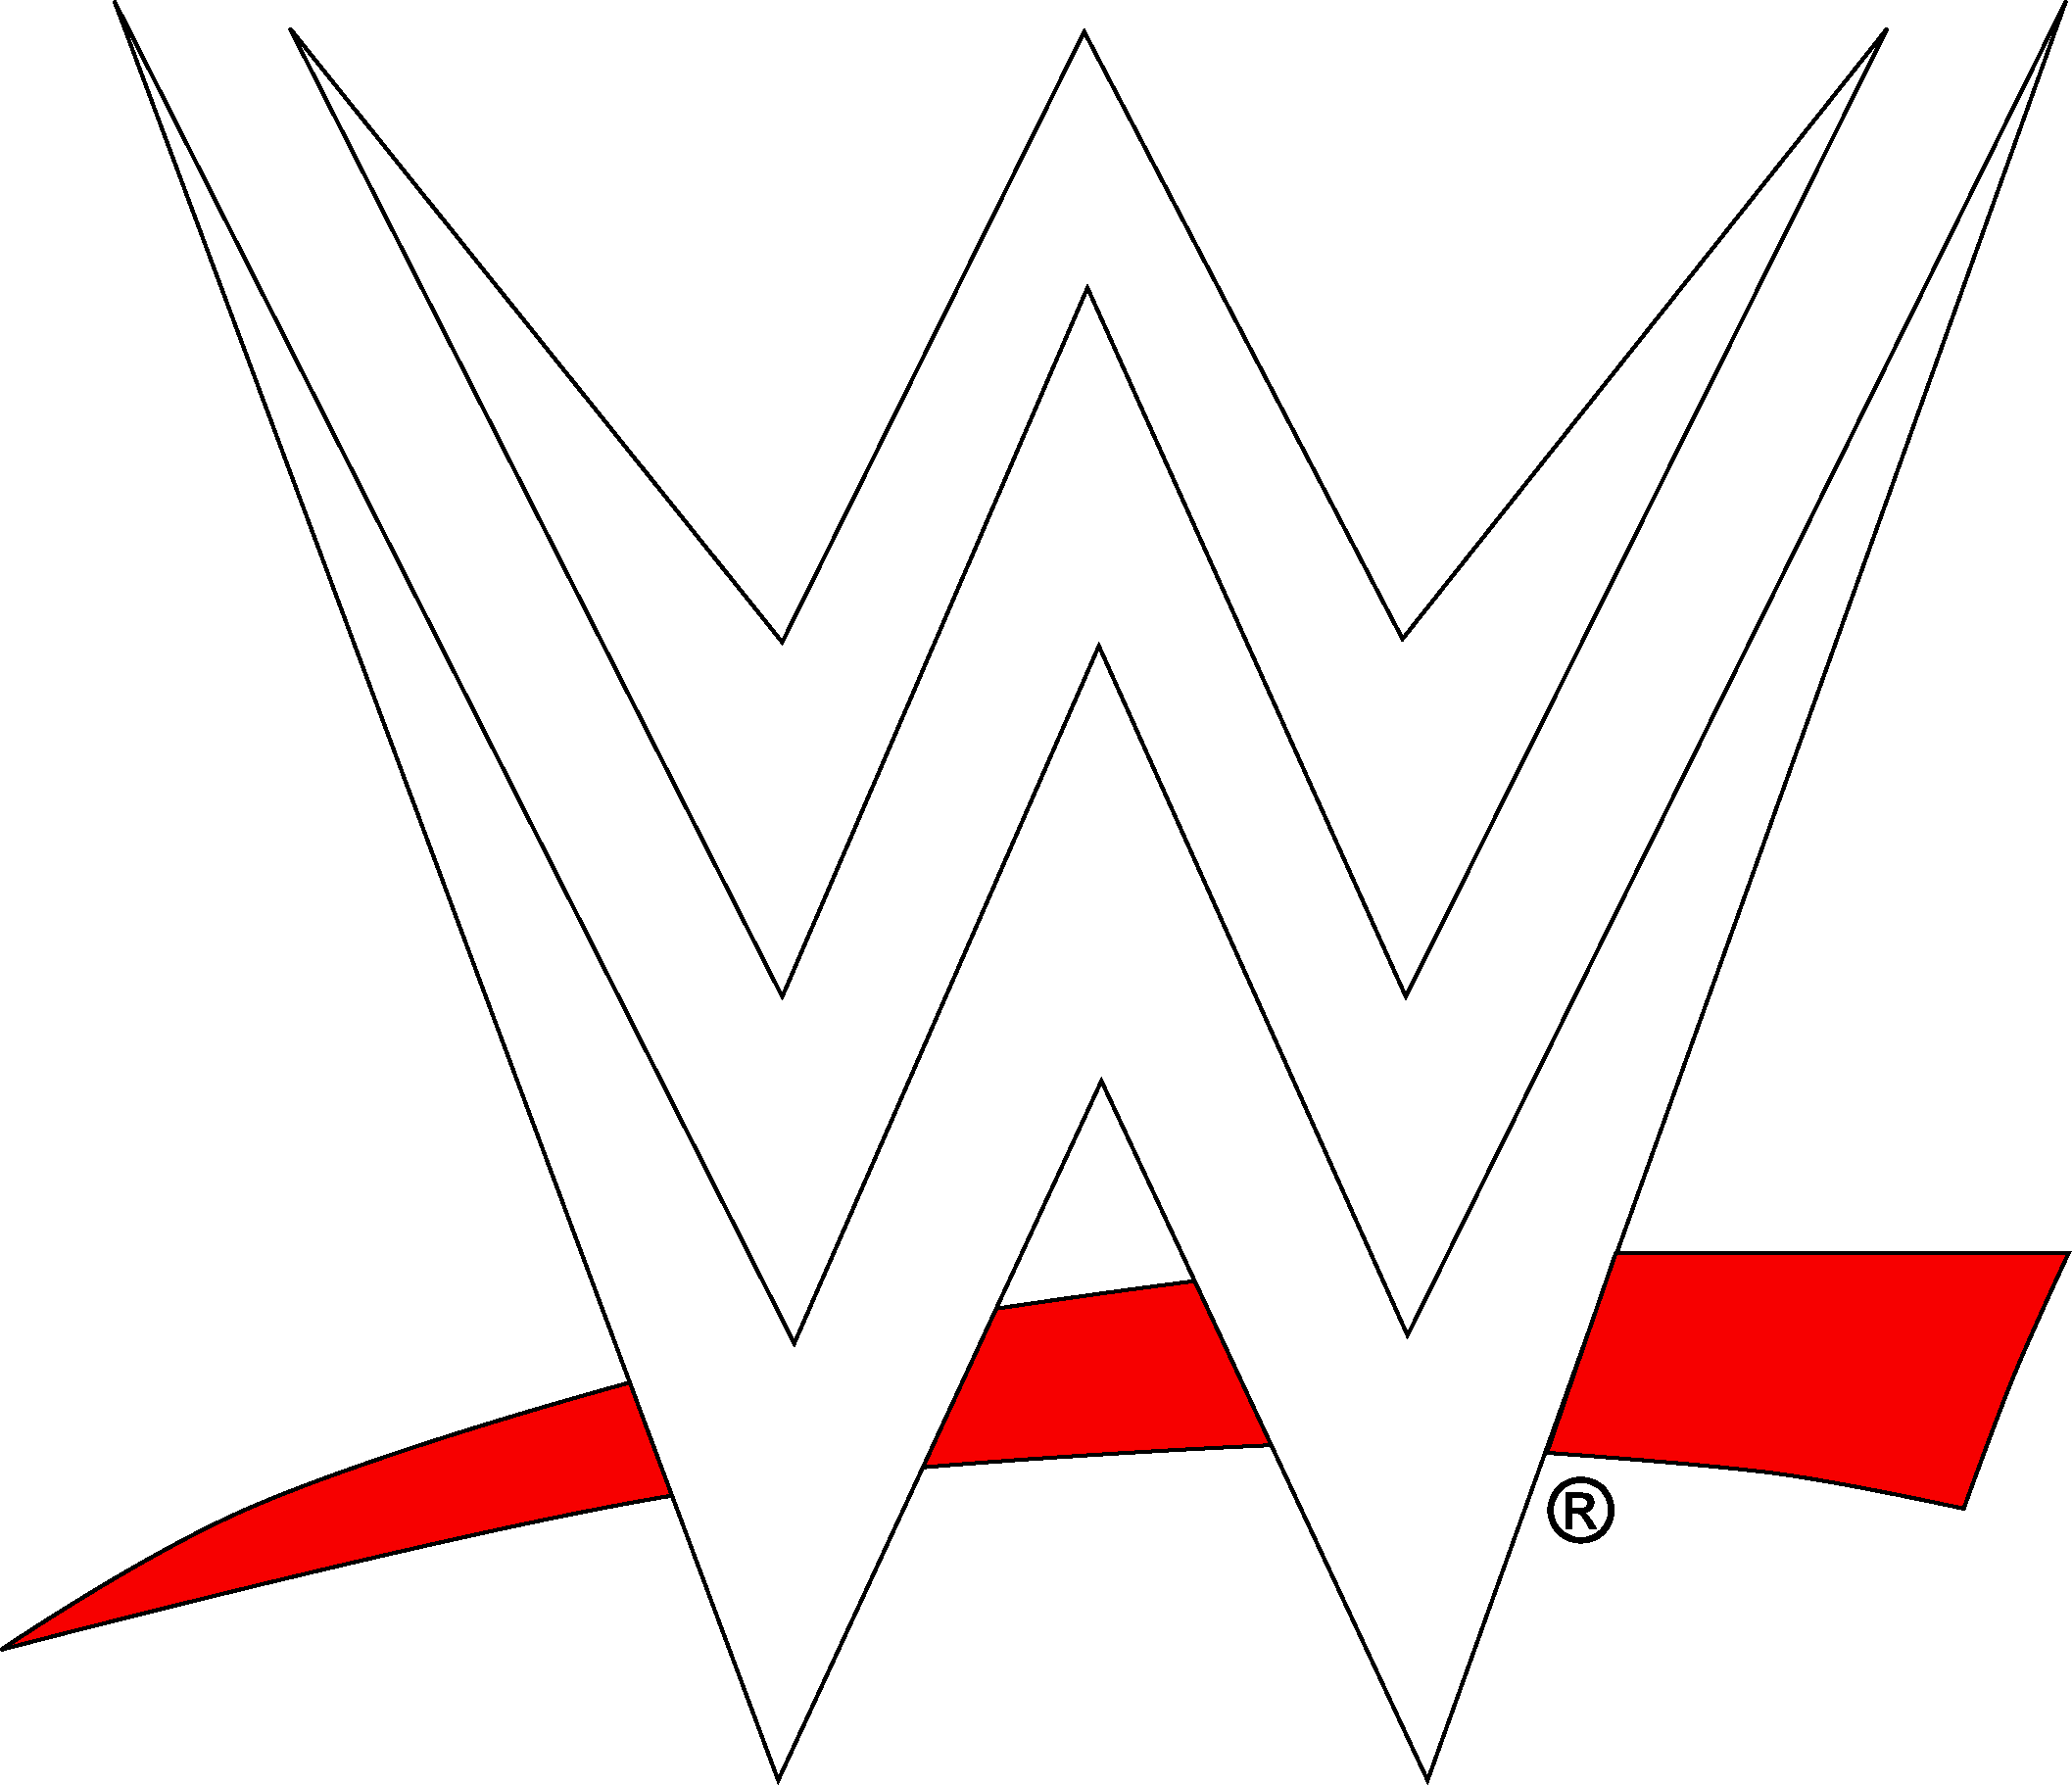 Wwe logo download clipart graphic freeuse stock 44+ Wwe Clipart | ClipartLook graphic freeuse stock